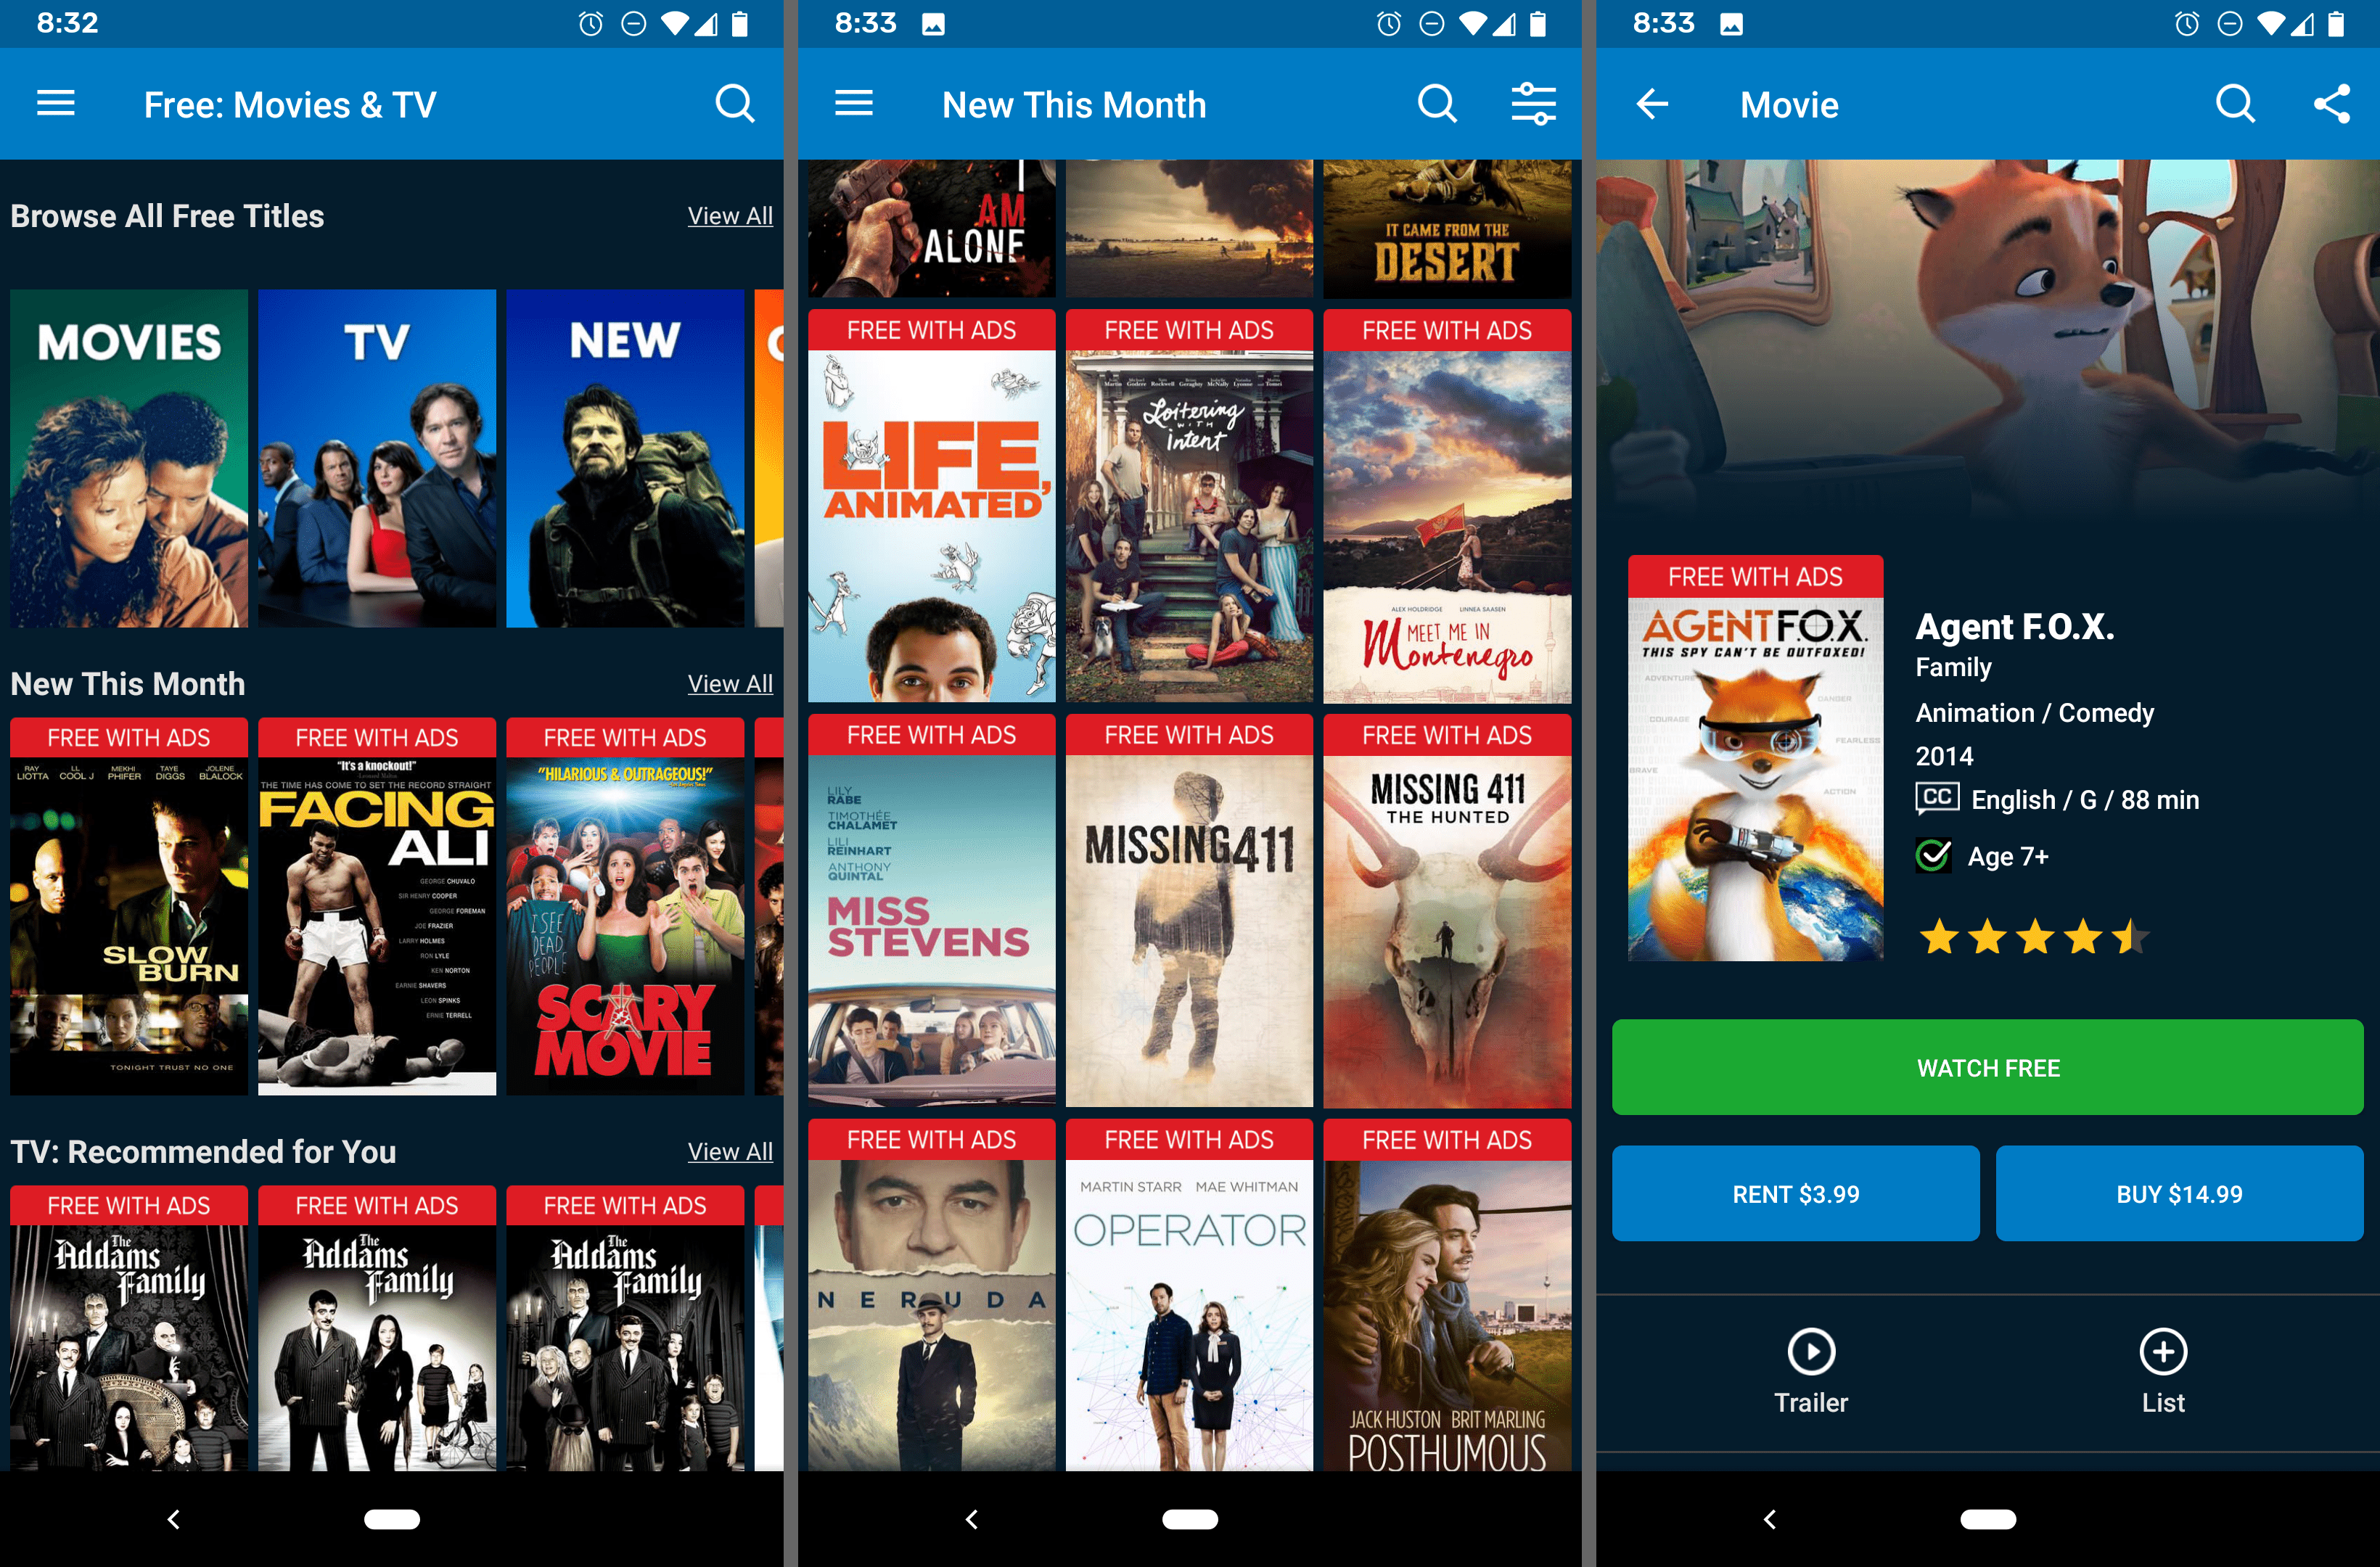 9 Best Free Apps for Streaming Movies in 2021